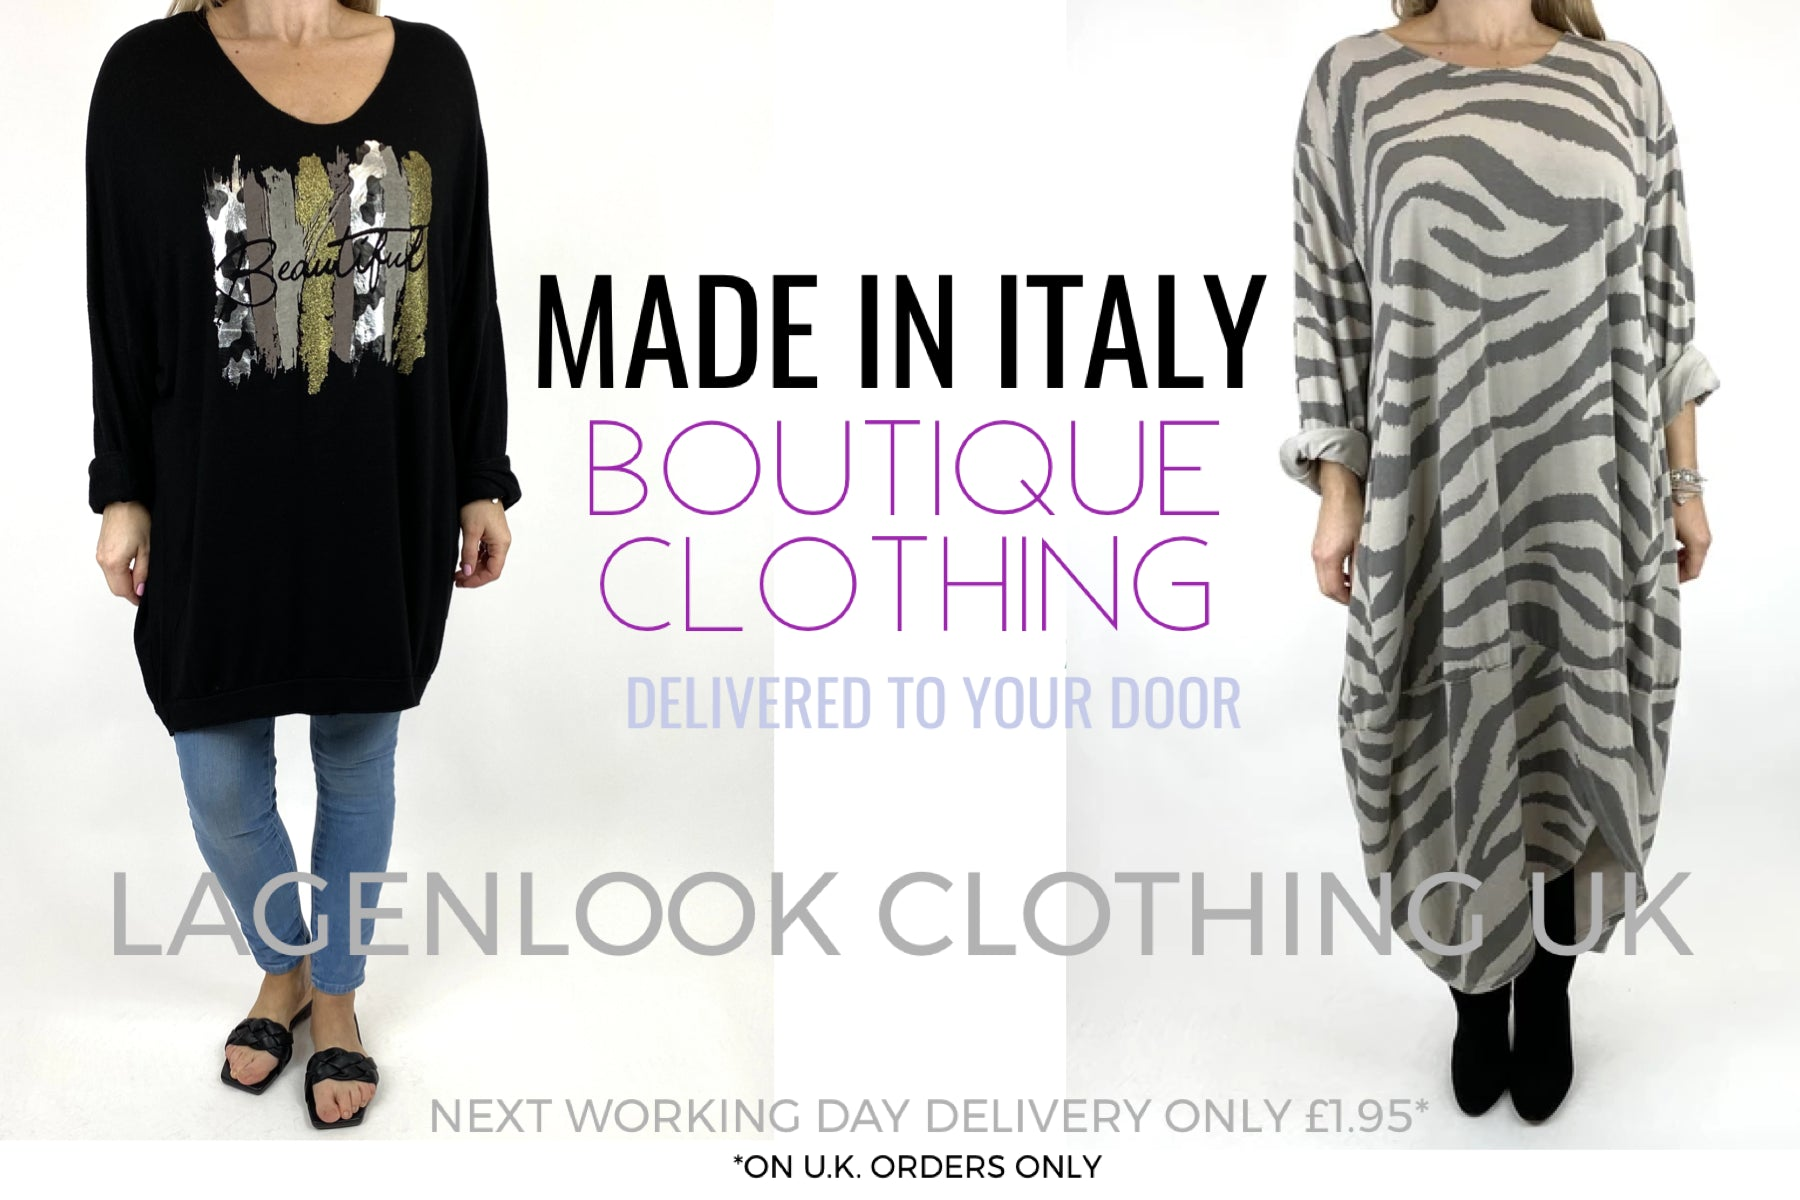 Lagenlook clothing uk